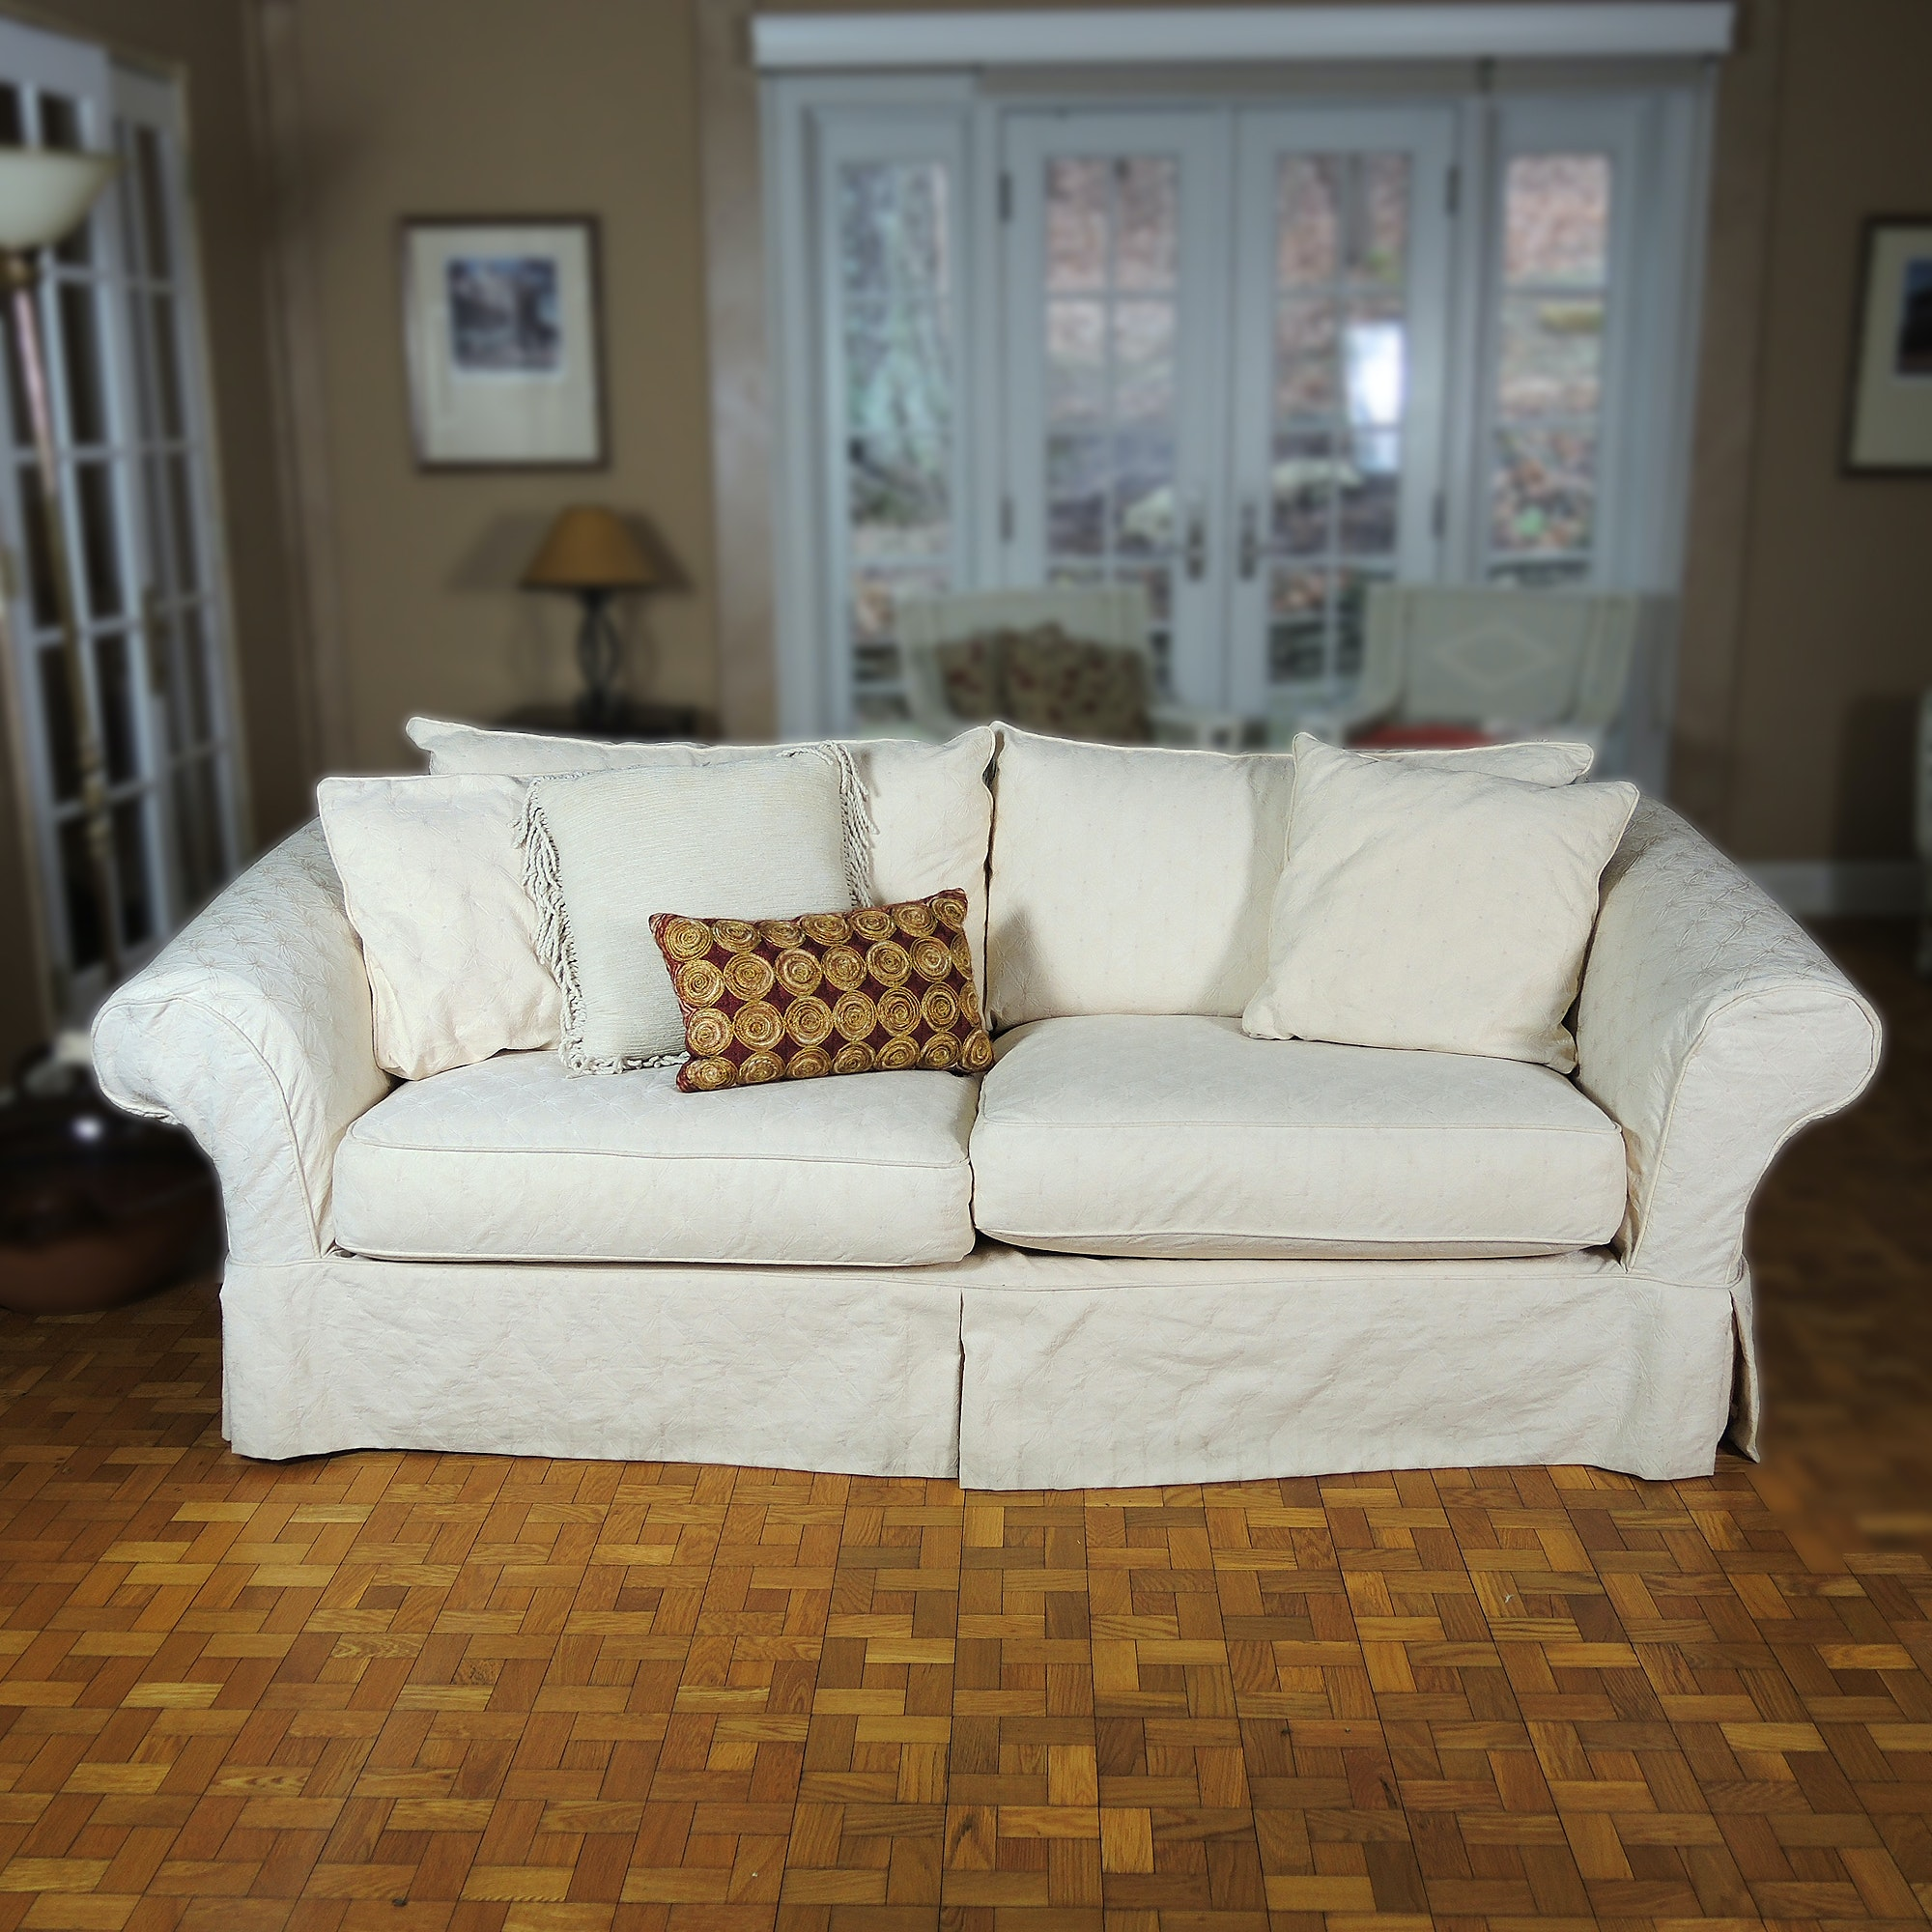 Sofa with Camden Collection Slipcover and Accent Pillows